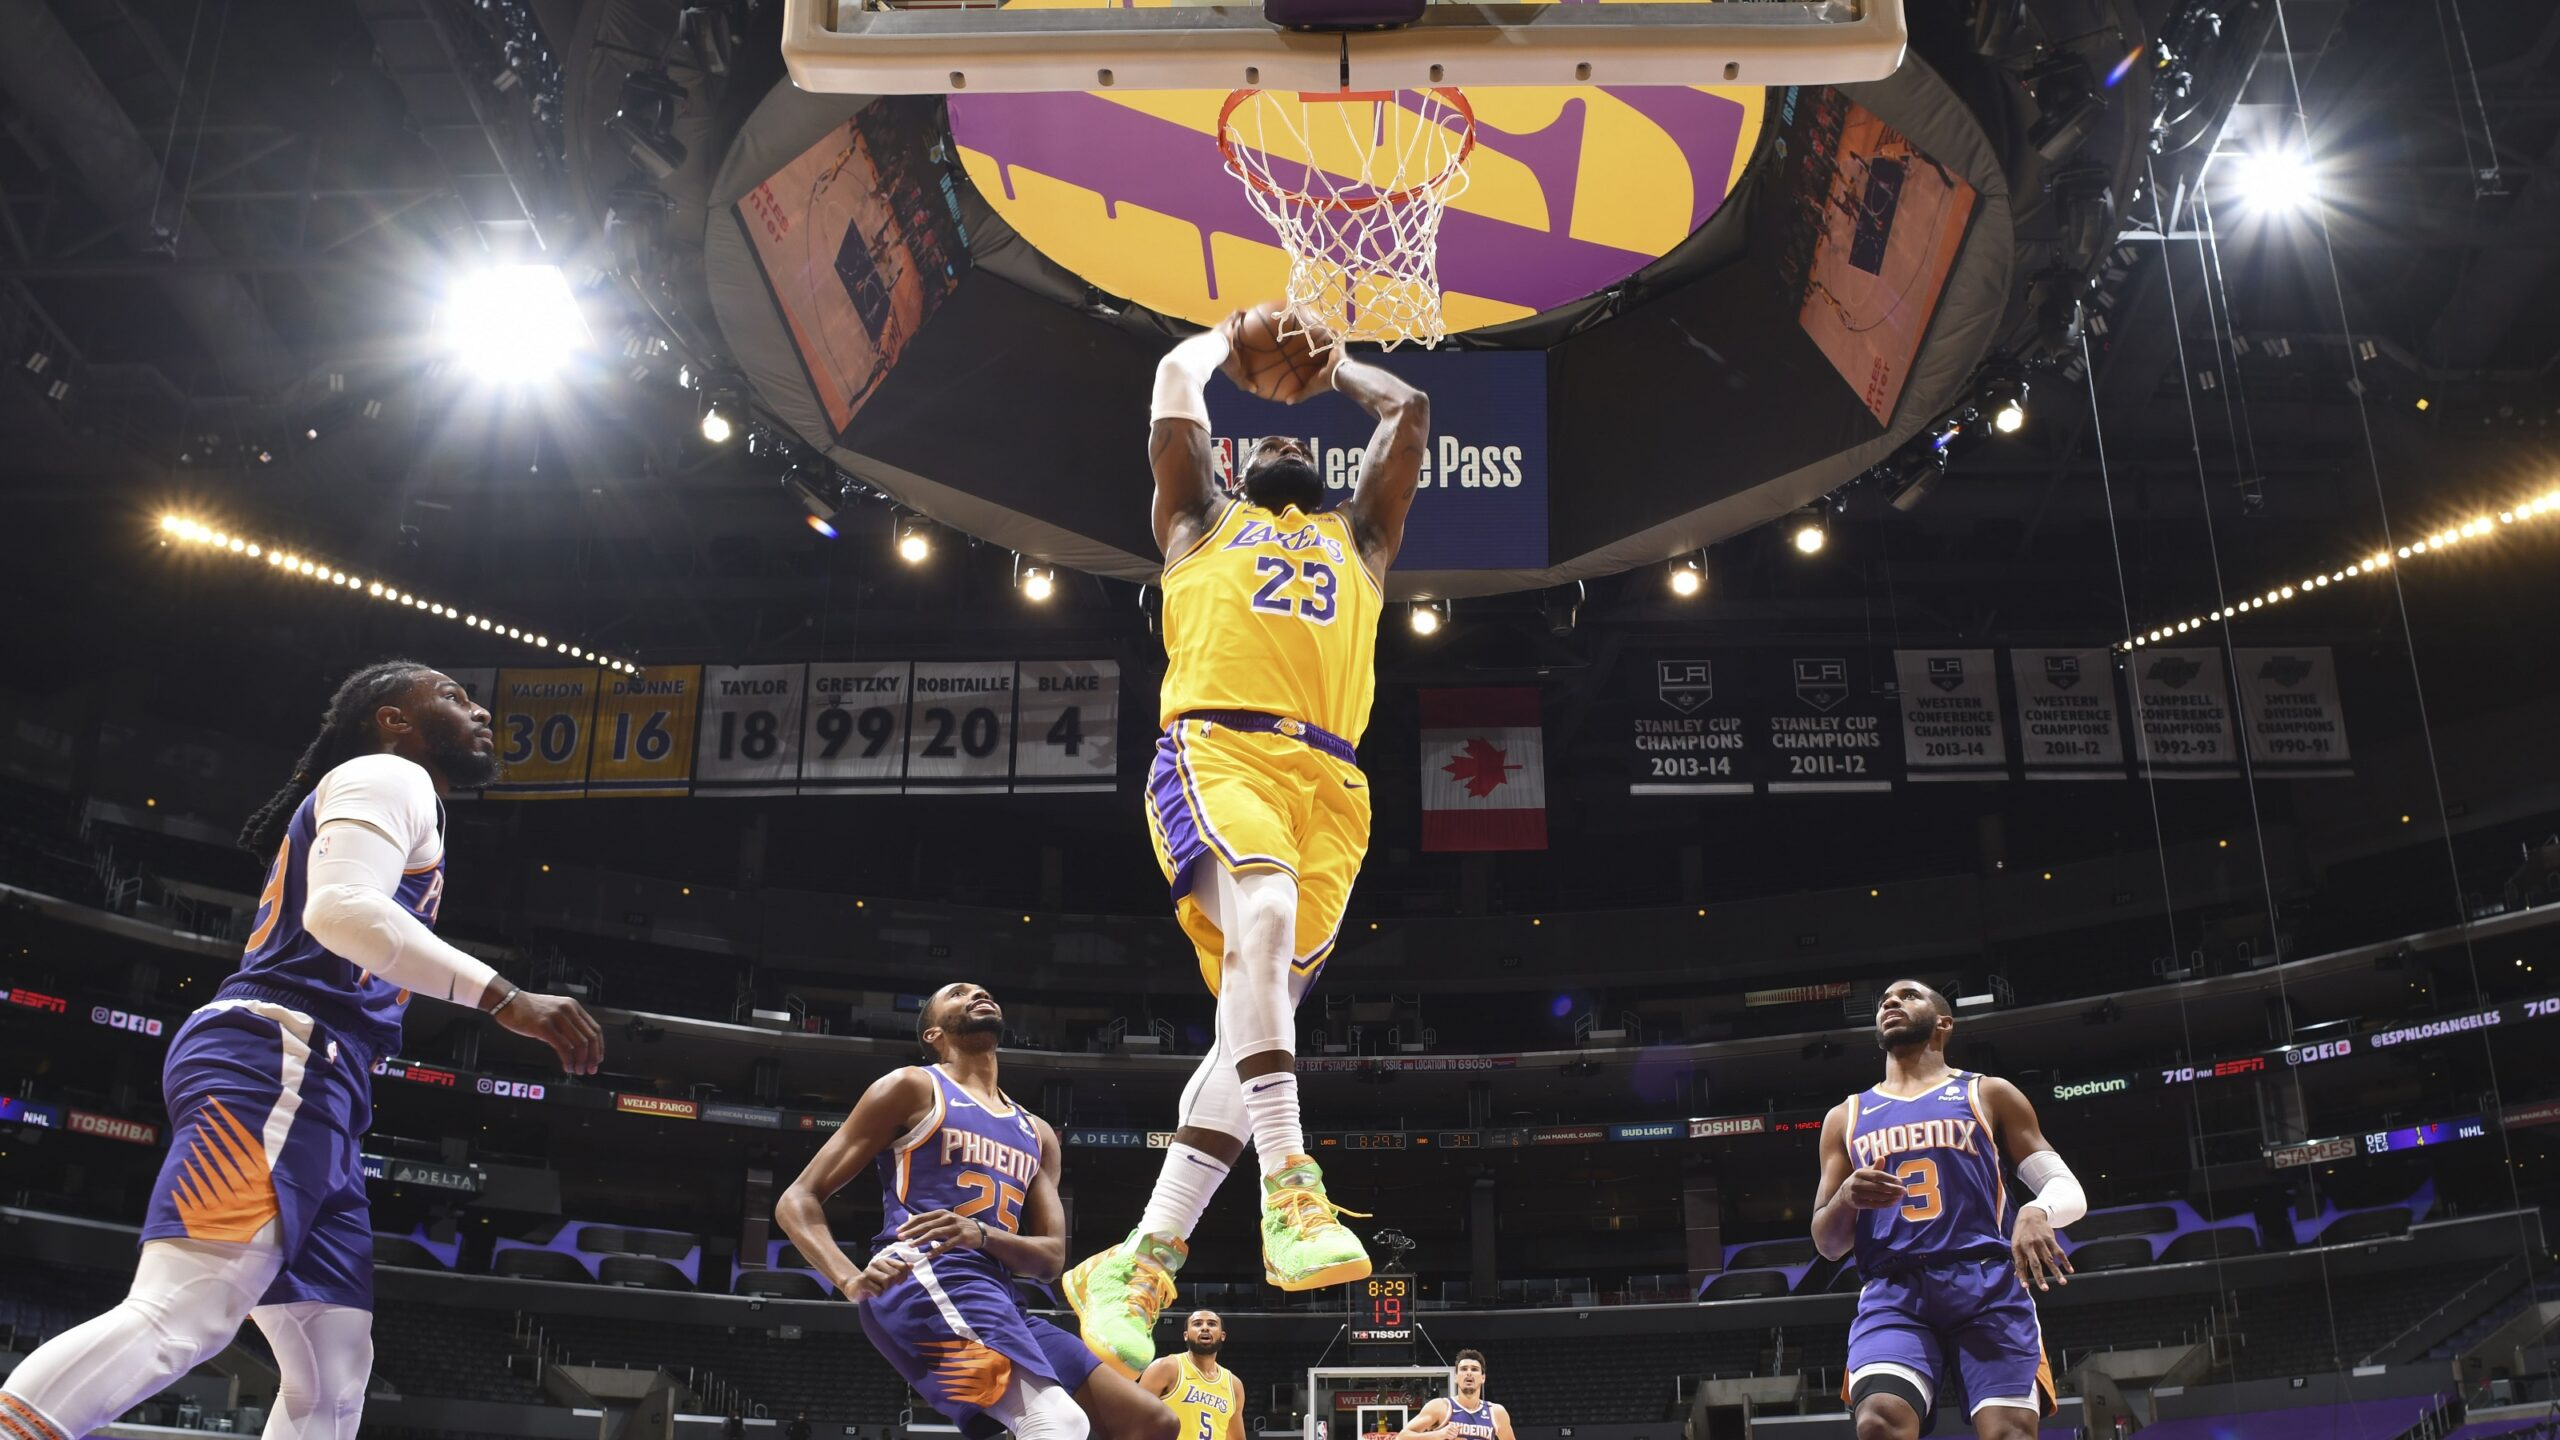 Dunk by LeBron James